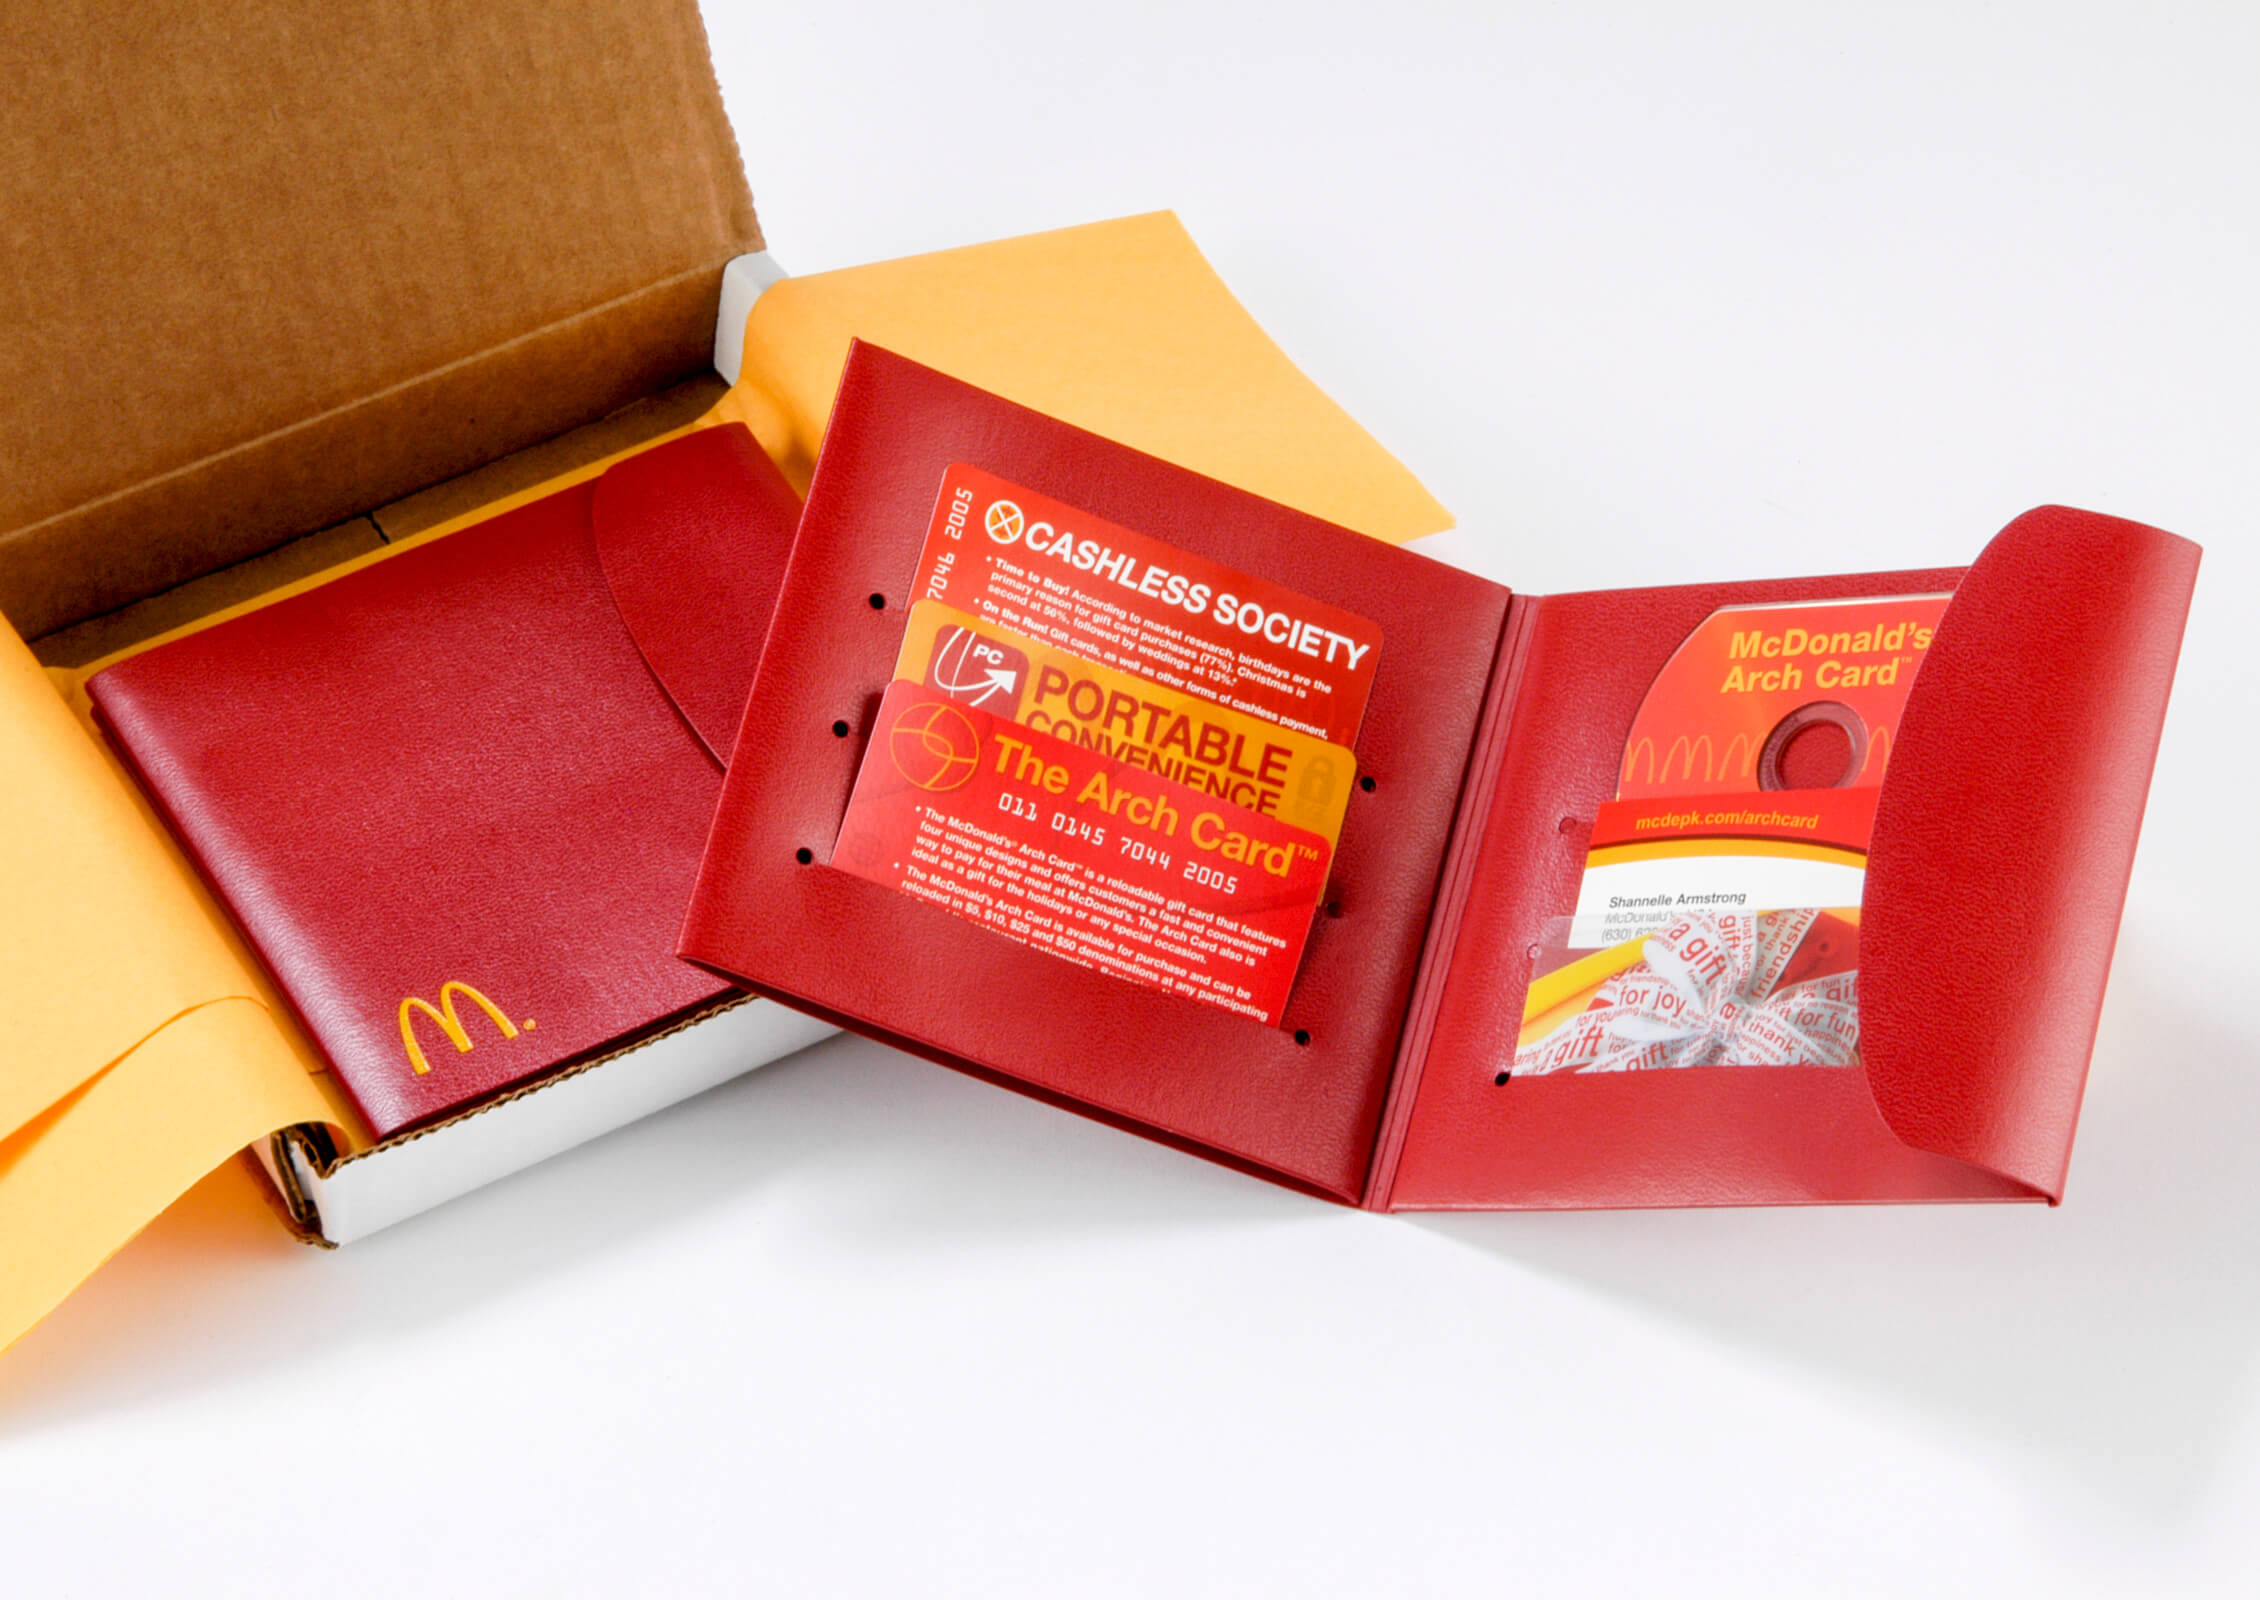 McDonald's Gift Card Wallet Press Kit Image